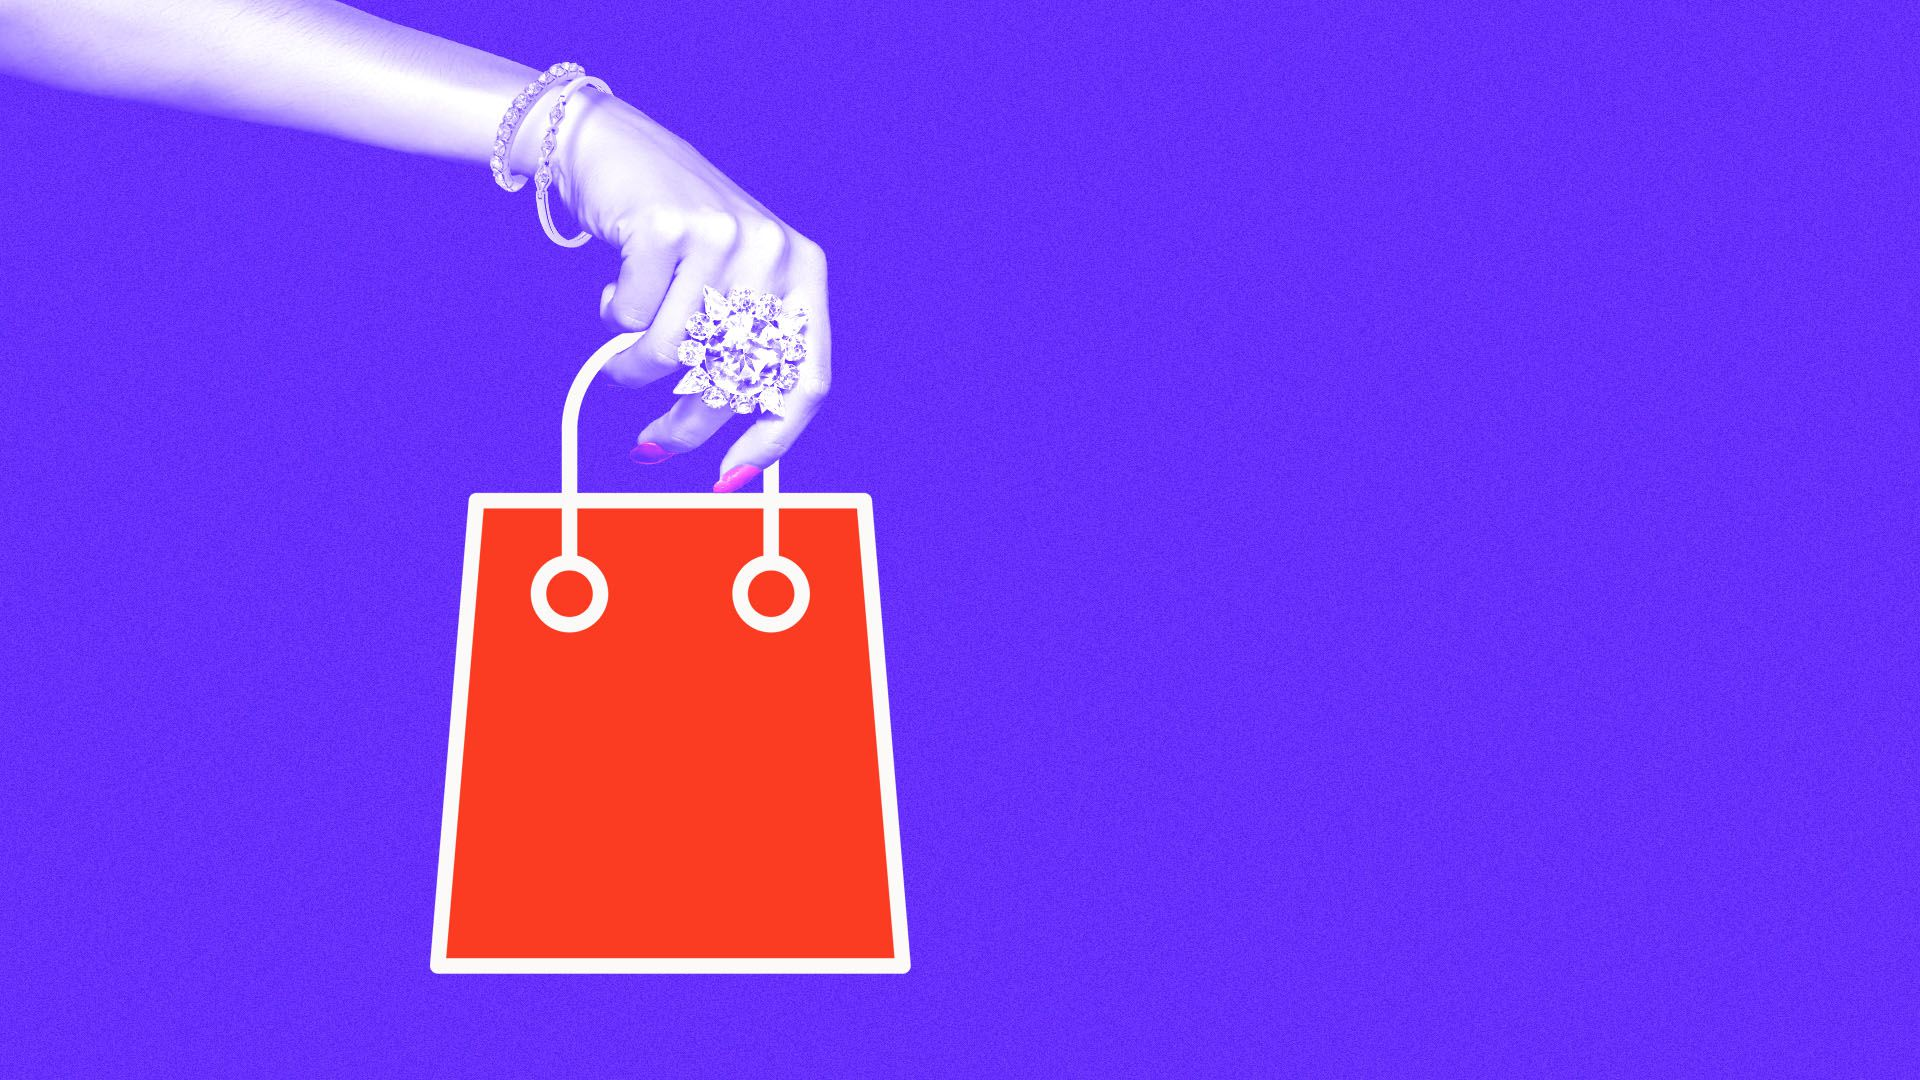 Walmart and Amazon battle for wealthy shoppers